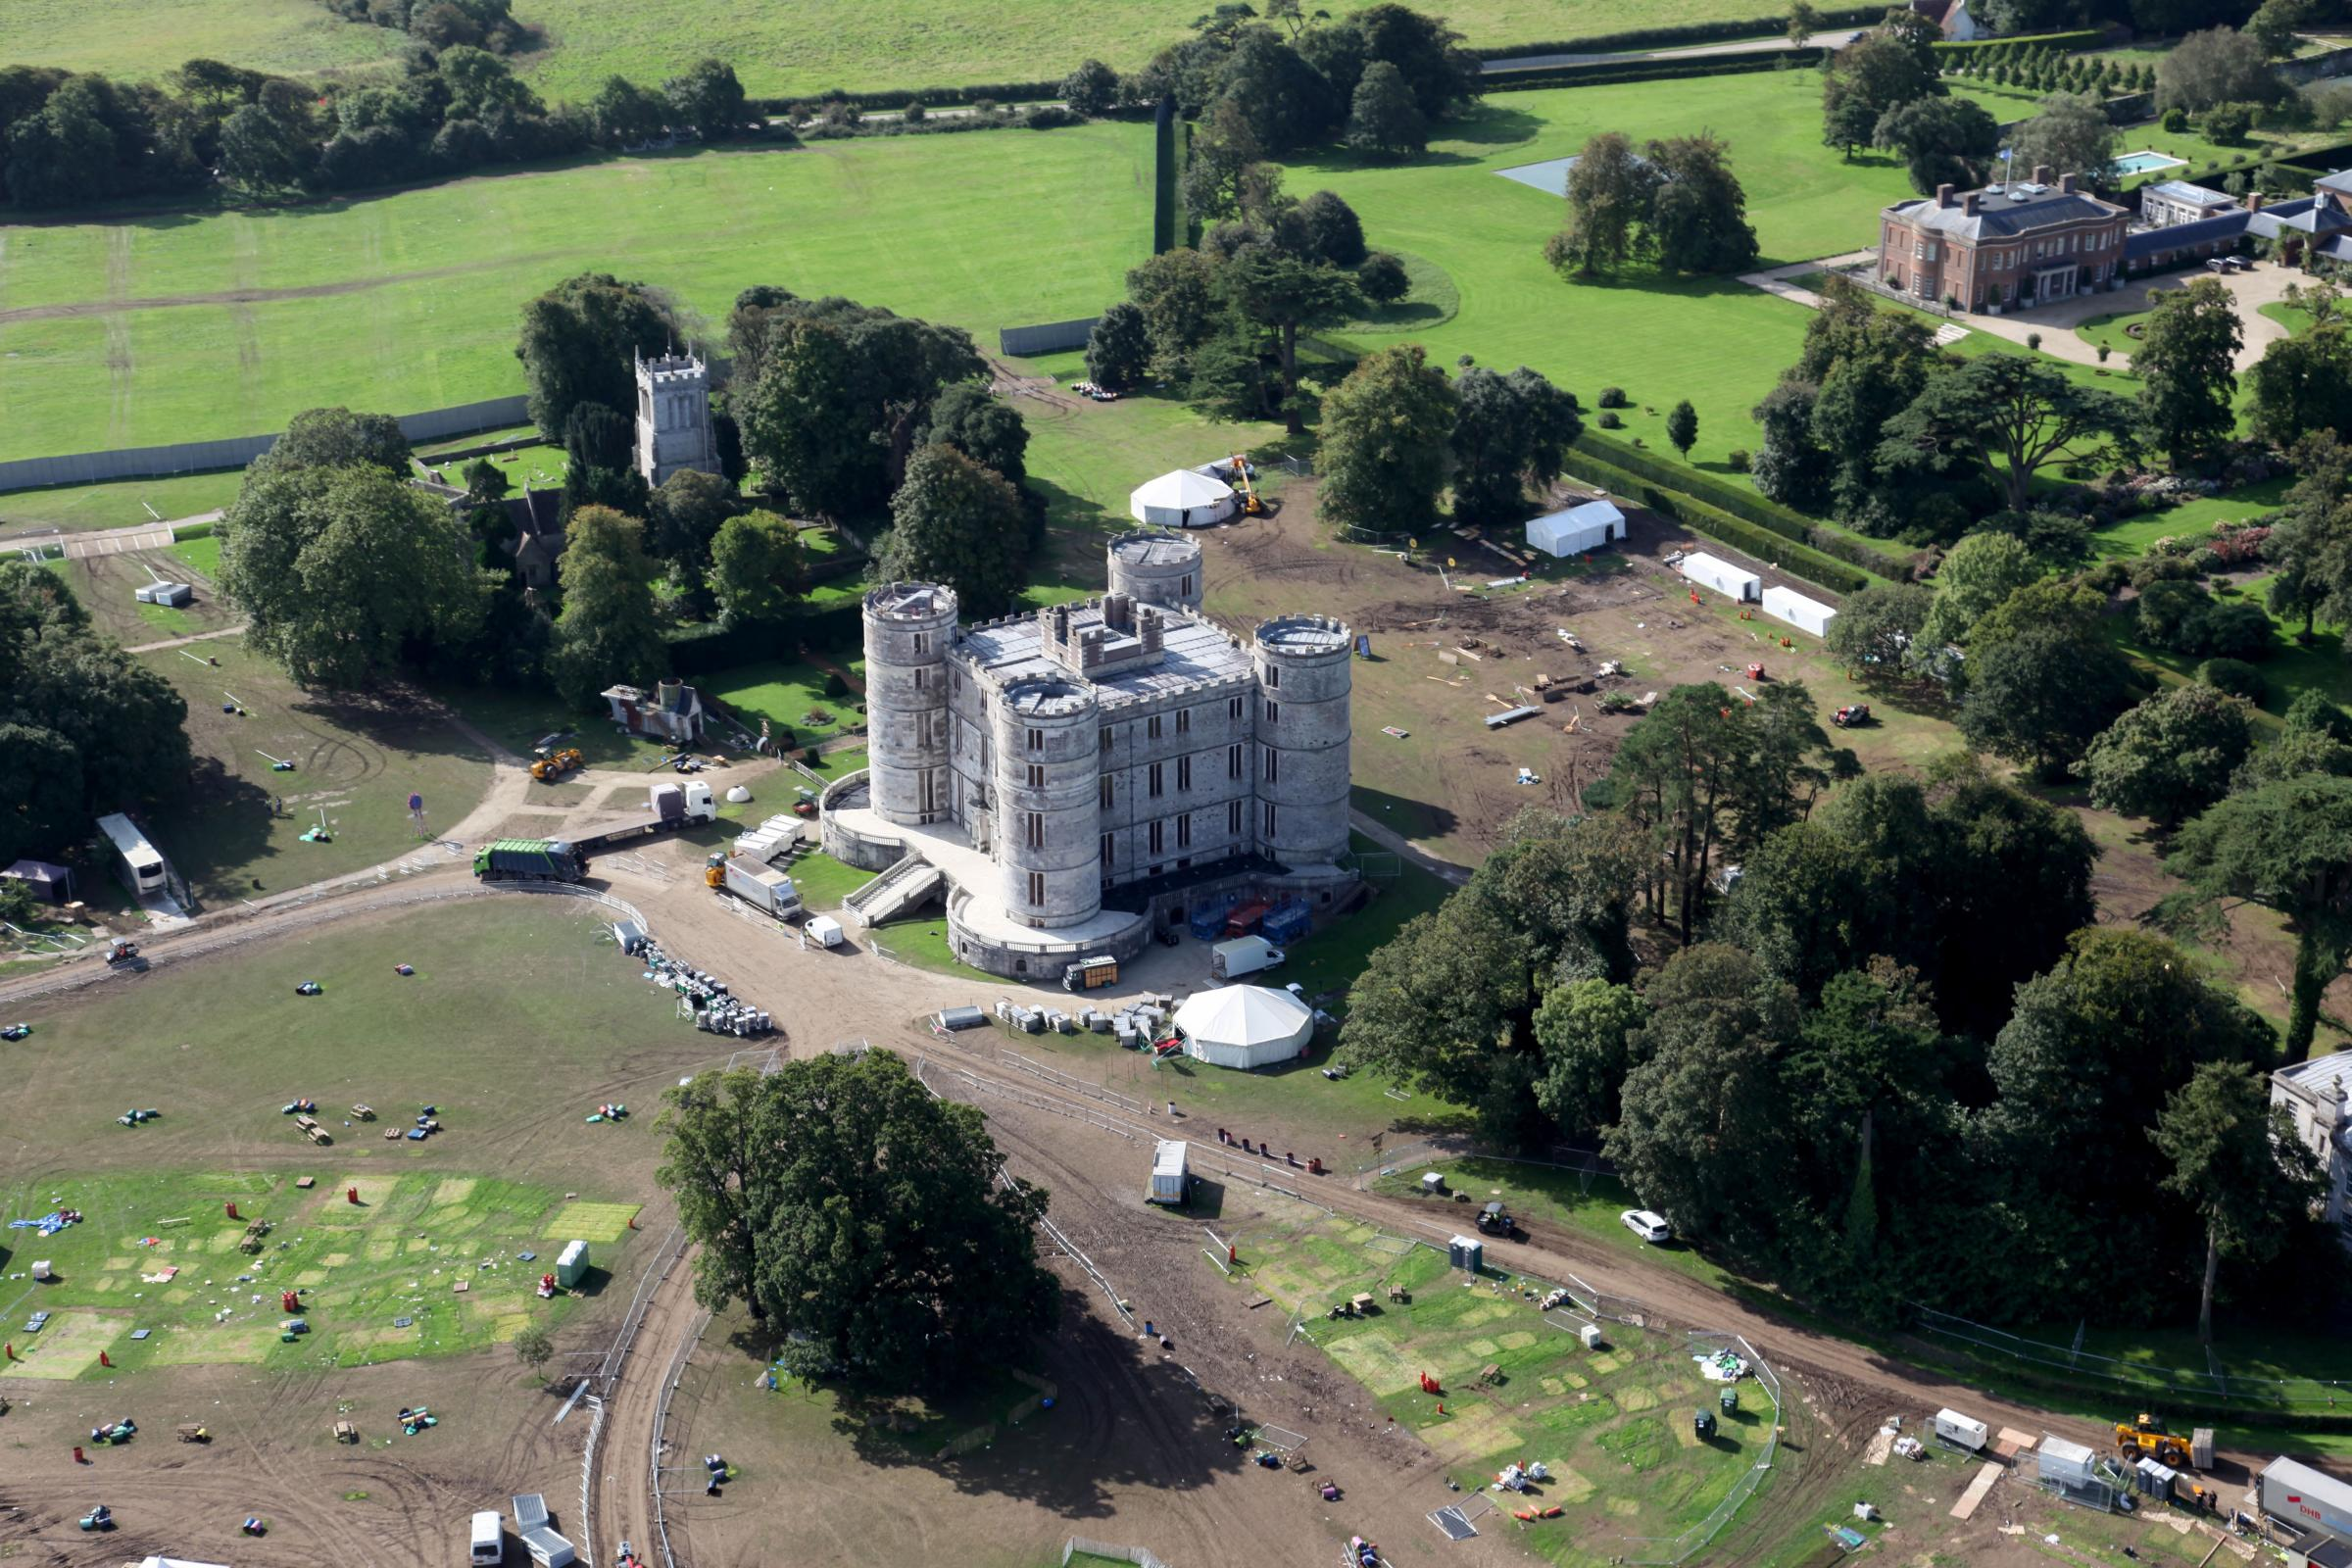 The Lulworth Castle site following the Bestival festival..